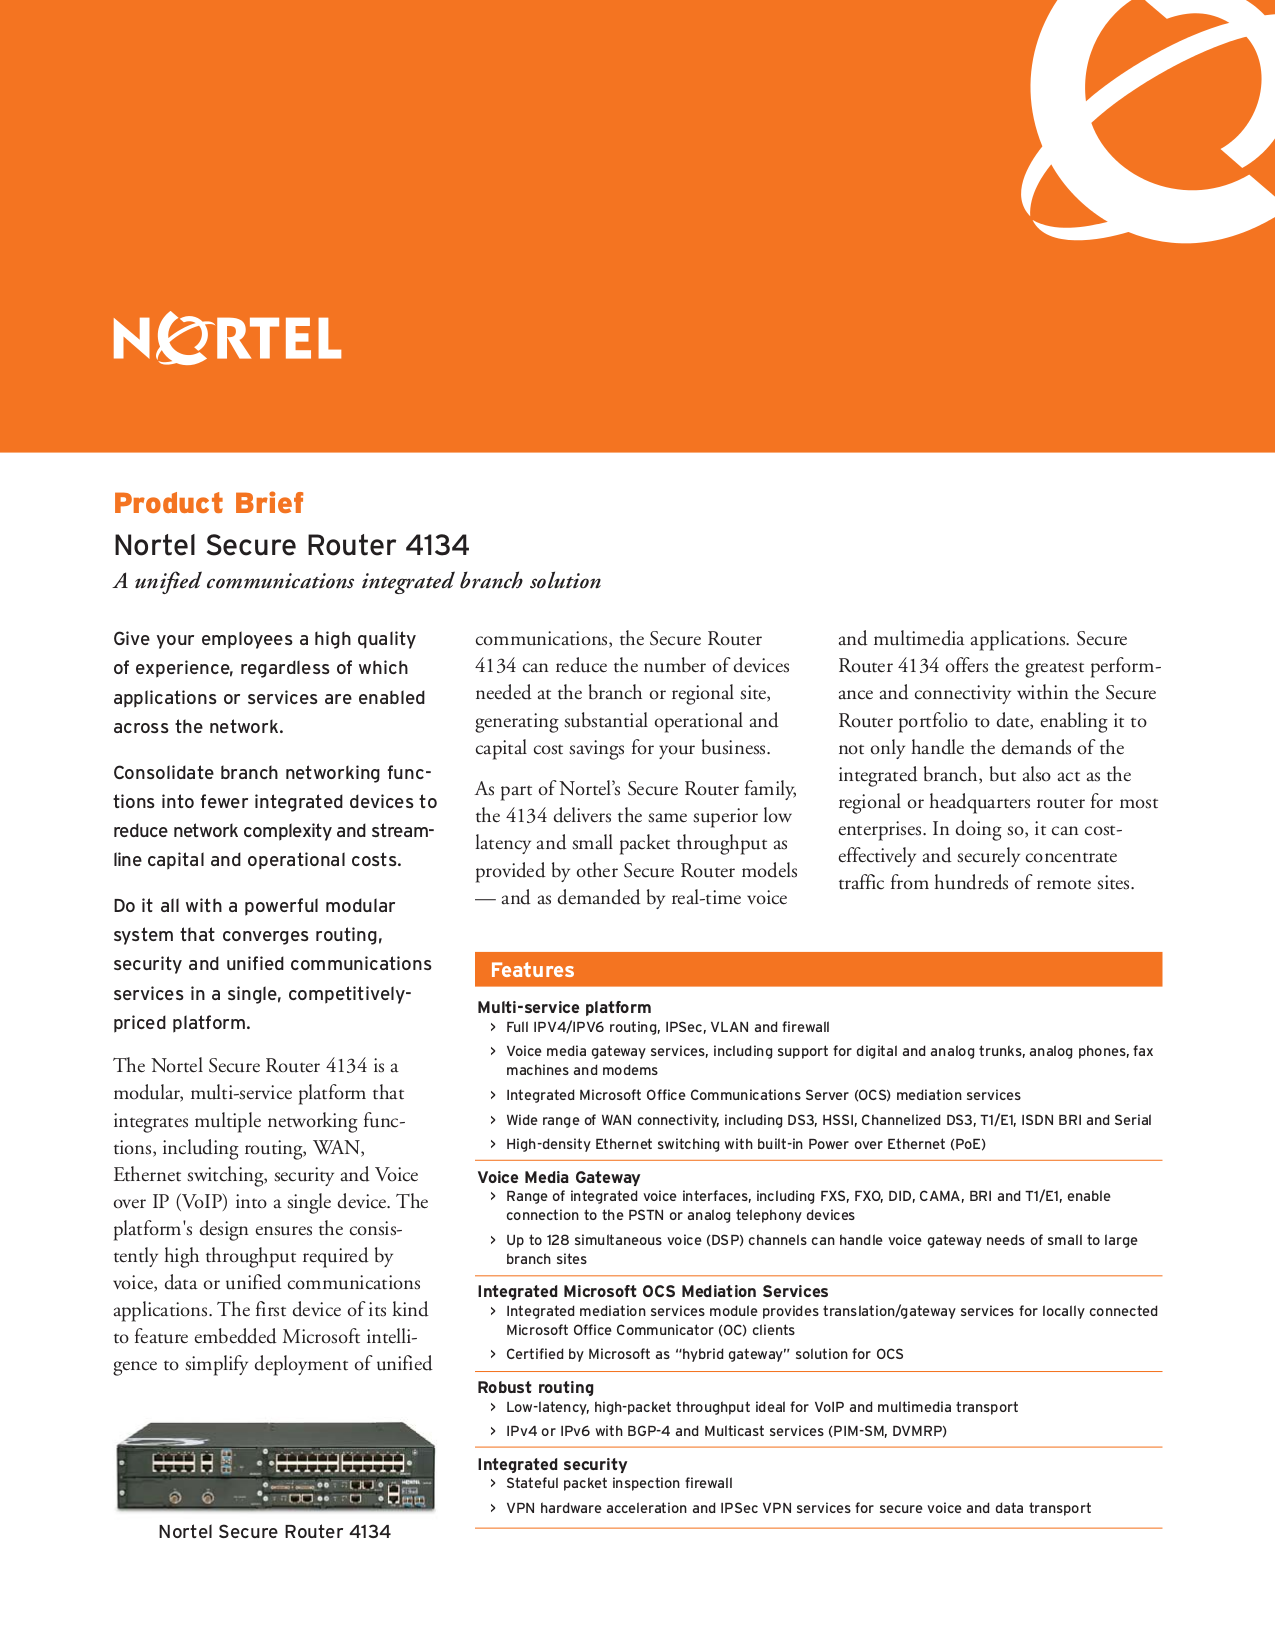 pdf for Nortel Router Secure 4134 manual